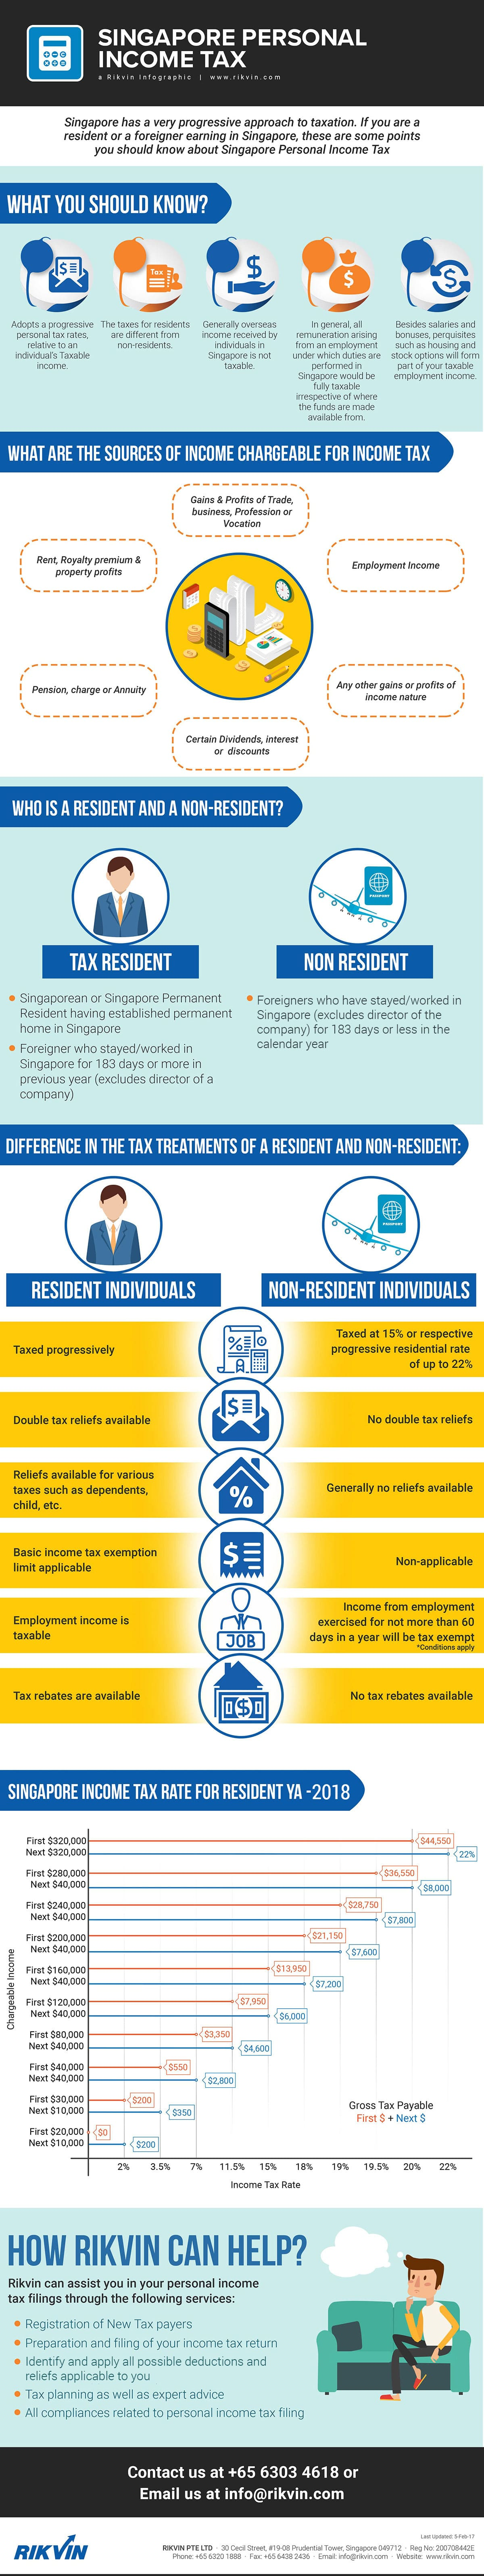 all-you-need-to-know-about-singapore-personal-income-tax_rikvin-infographic All you need to know about Singapore Personal Income Tax